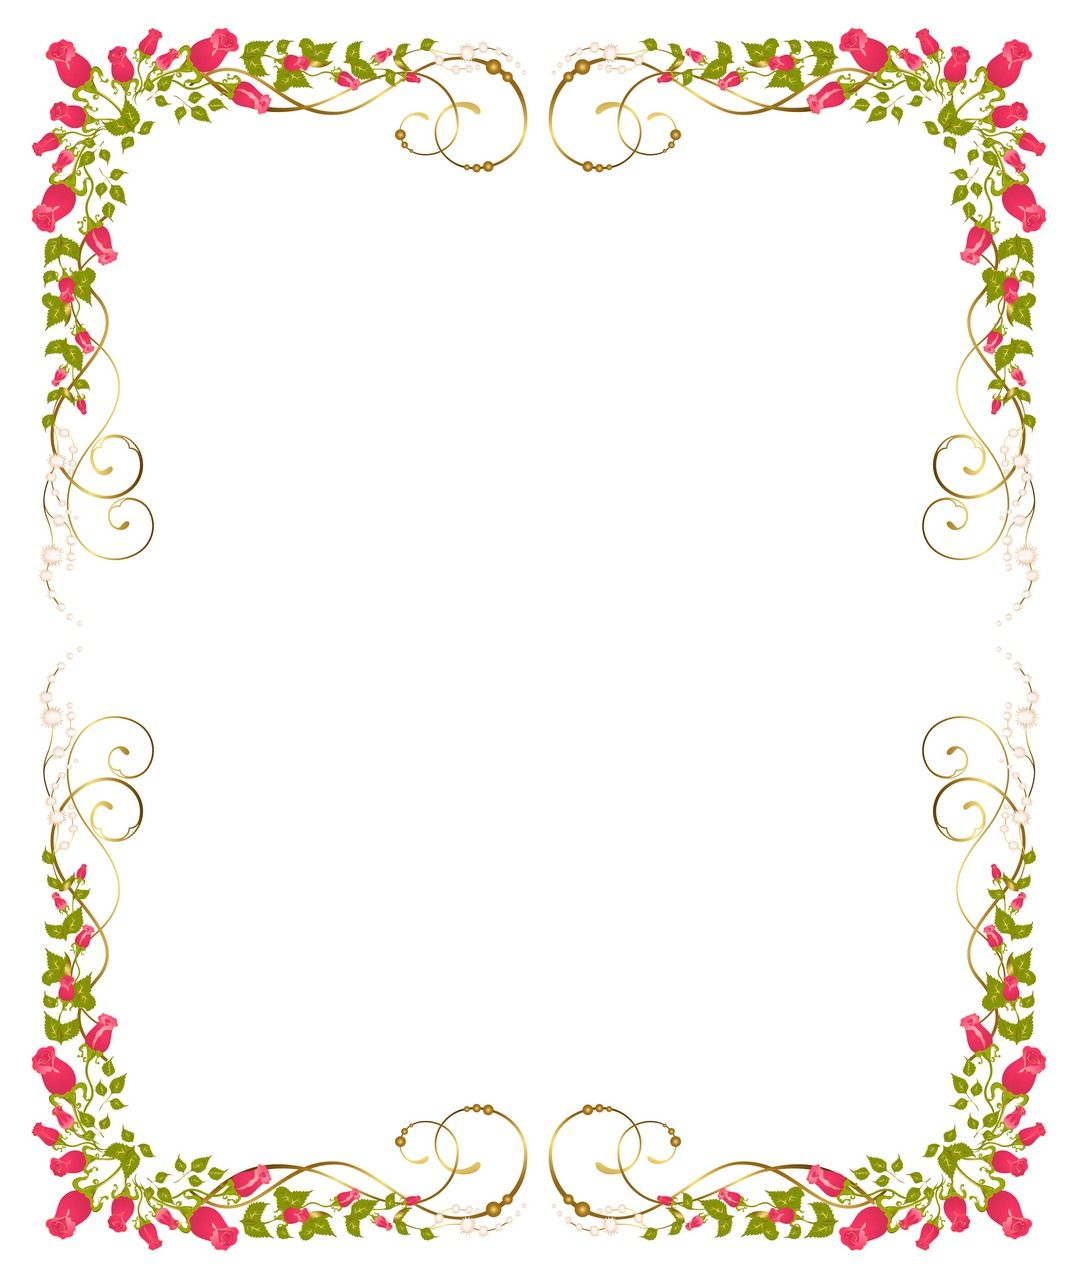 Border frame with black and yellow stripe on white background - Flower Background Frame 09 Vector Eps Free Download Logo Icons Brand Emblems